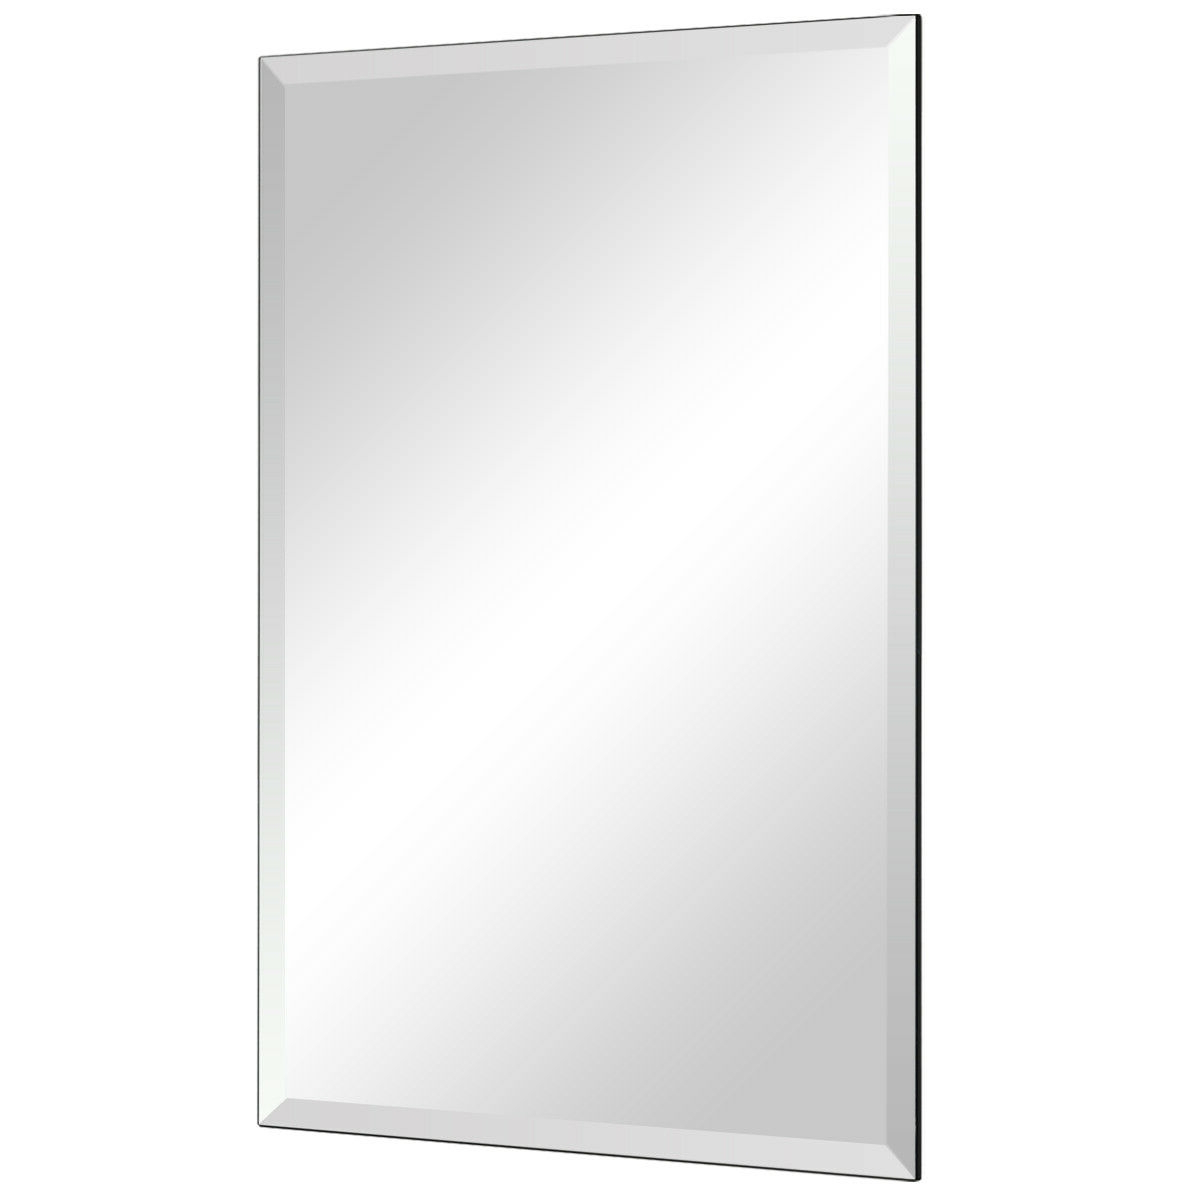 "Well Liked 24"" X 36"" Rectangle Wall Mounted Bathroom Beveled Mirror For 24 X 36 Wall Mirrors (View 18 of 20)"